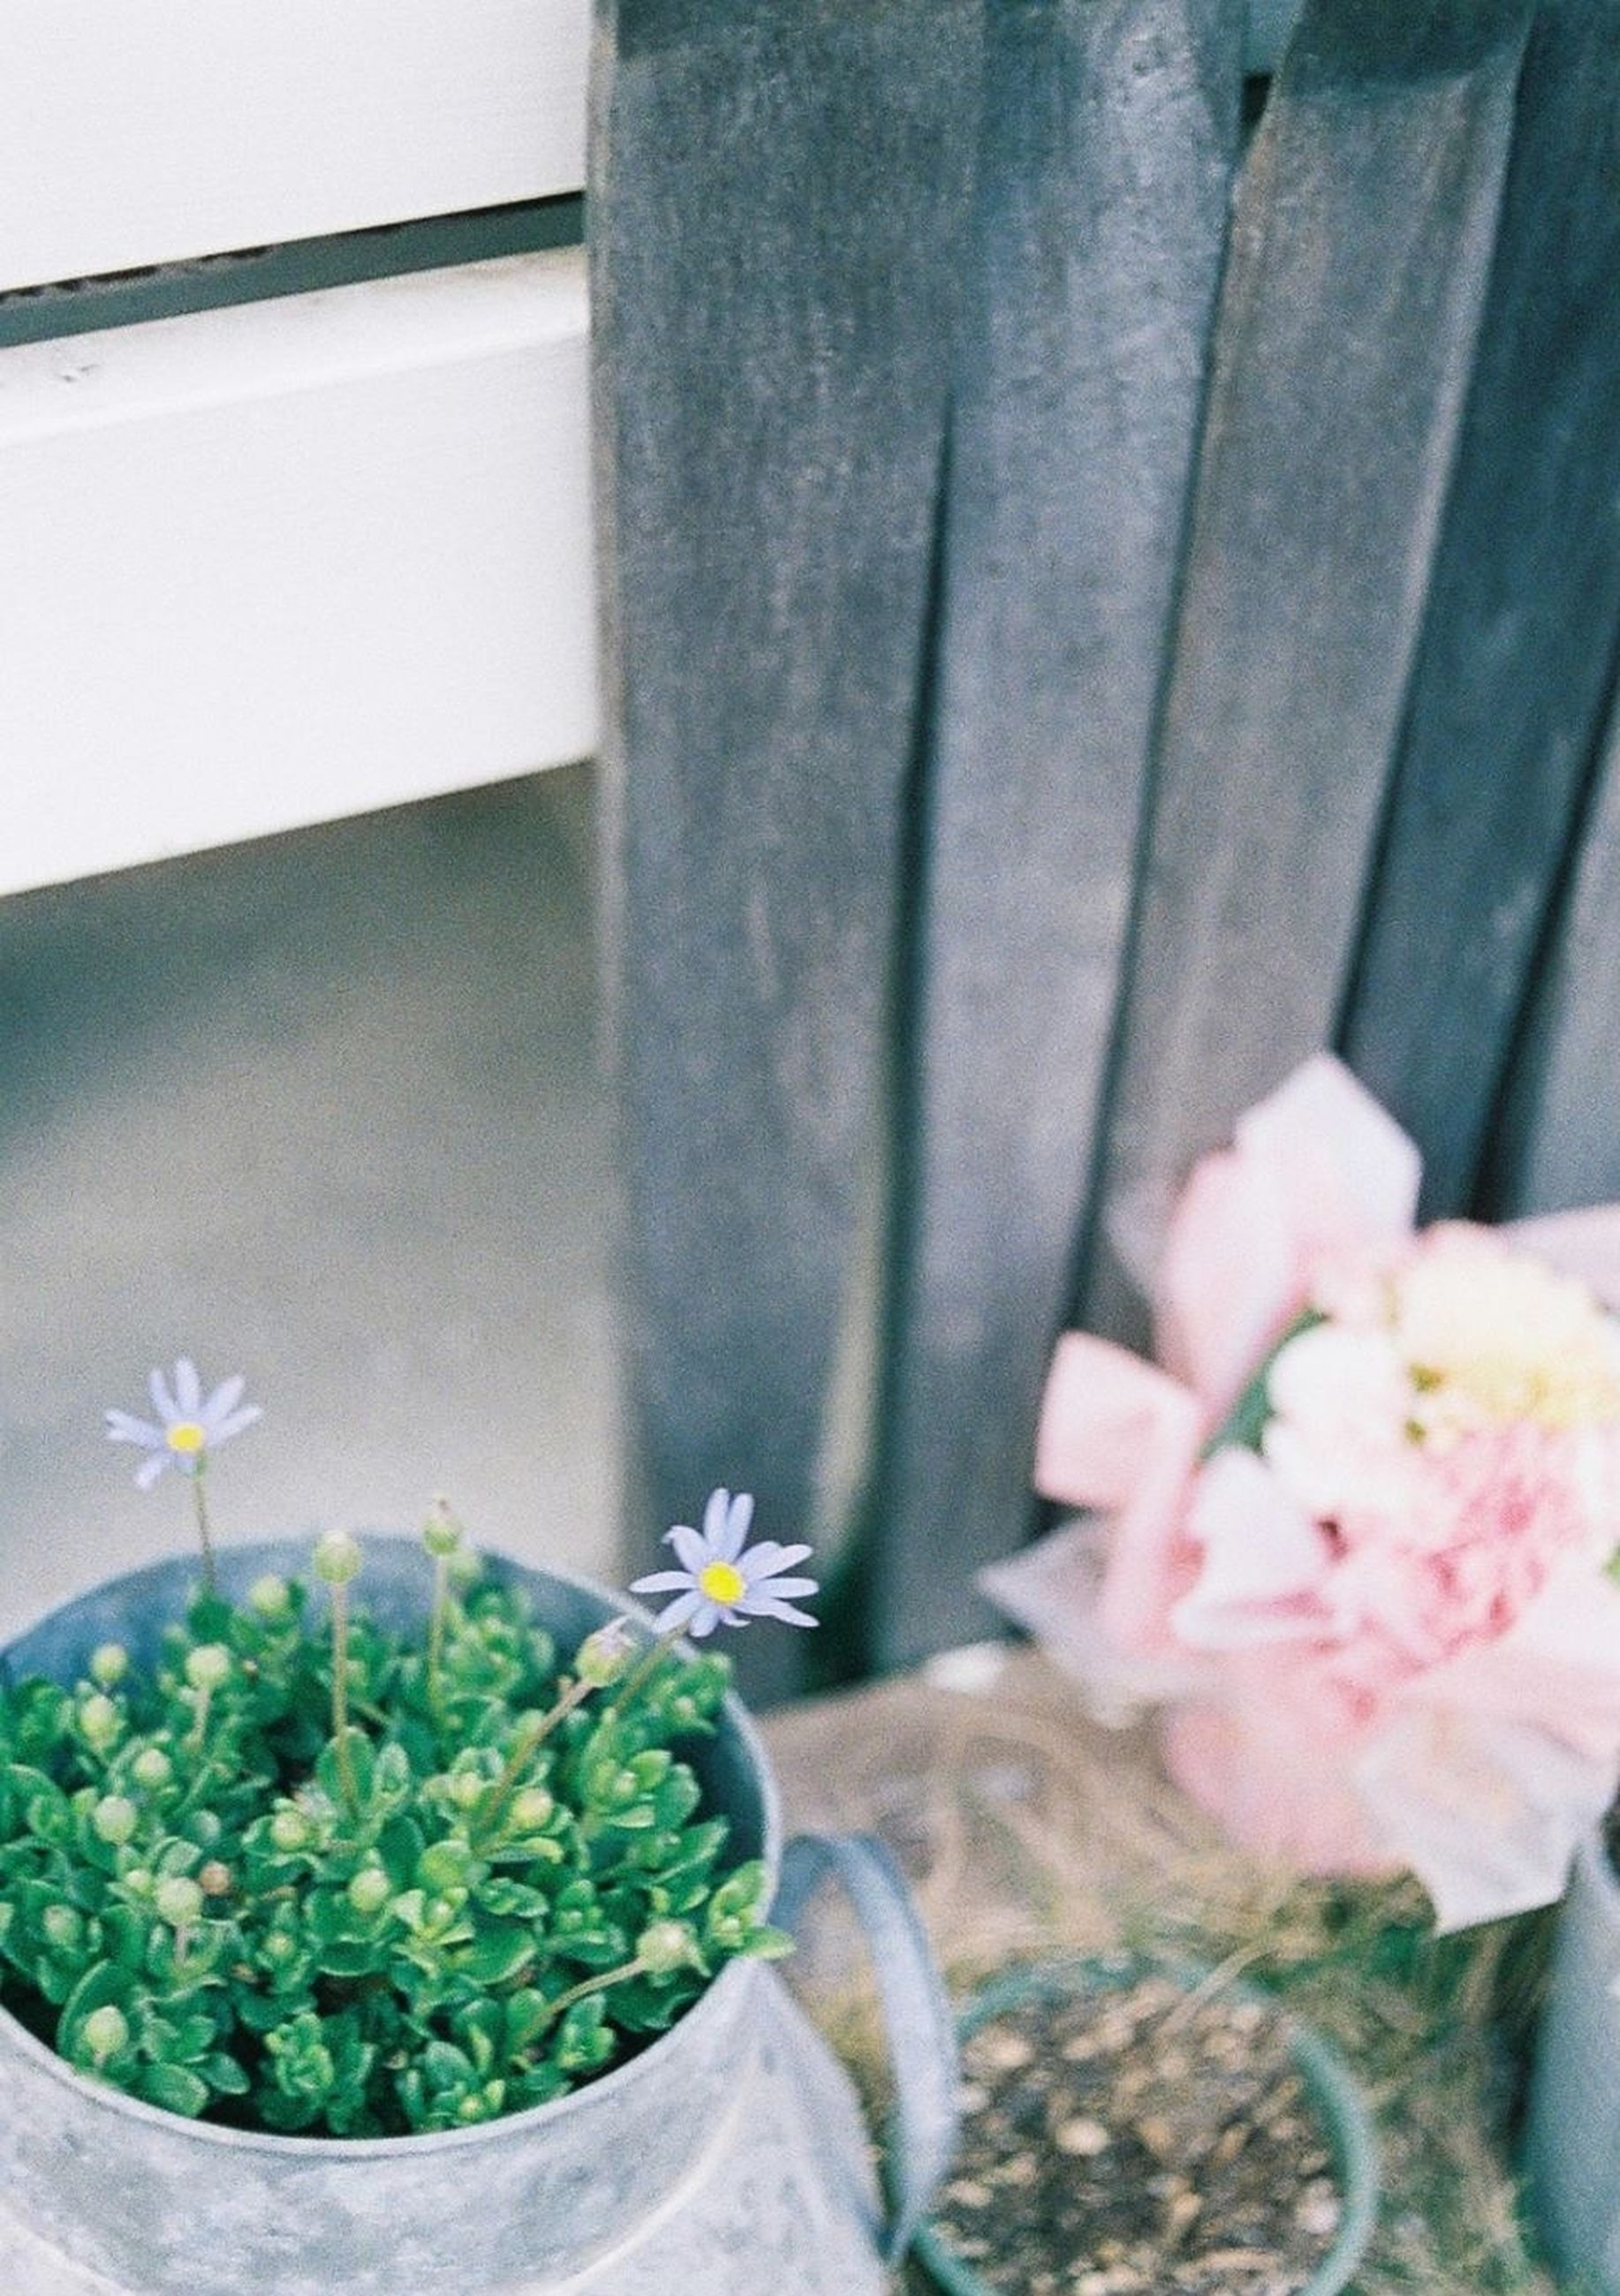 flower, plant, freshness, potted plant, fragility, growth, leaf, petal, flower head, close-up, nature, built structure, flower pot, beauty in nature, green color, wall - building feature, architecture, blooming, indoors, day